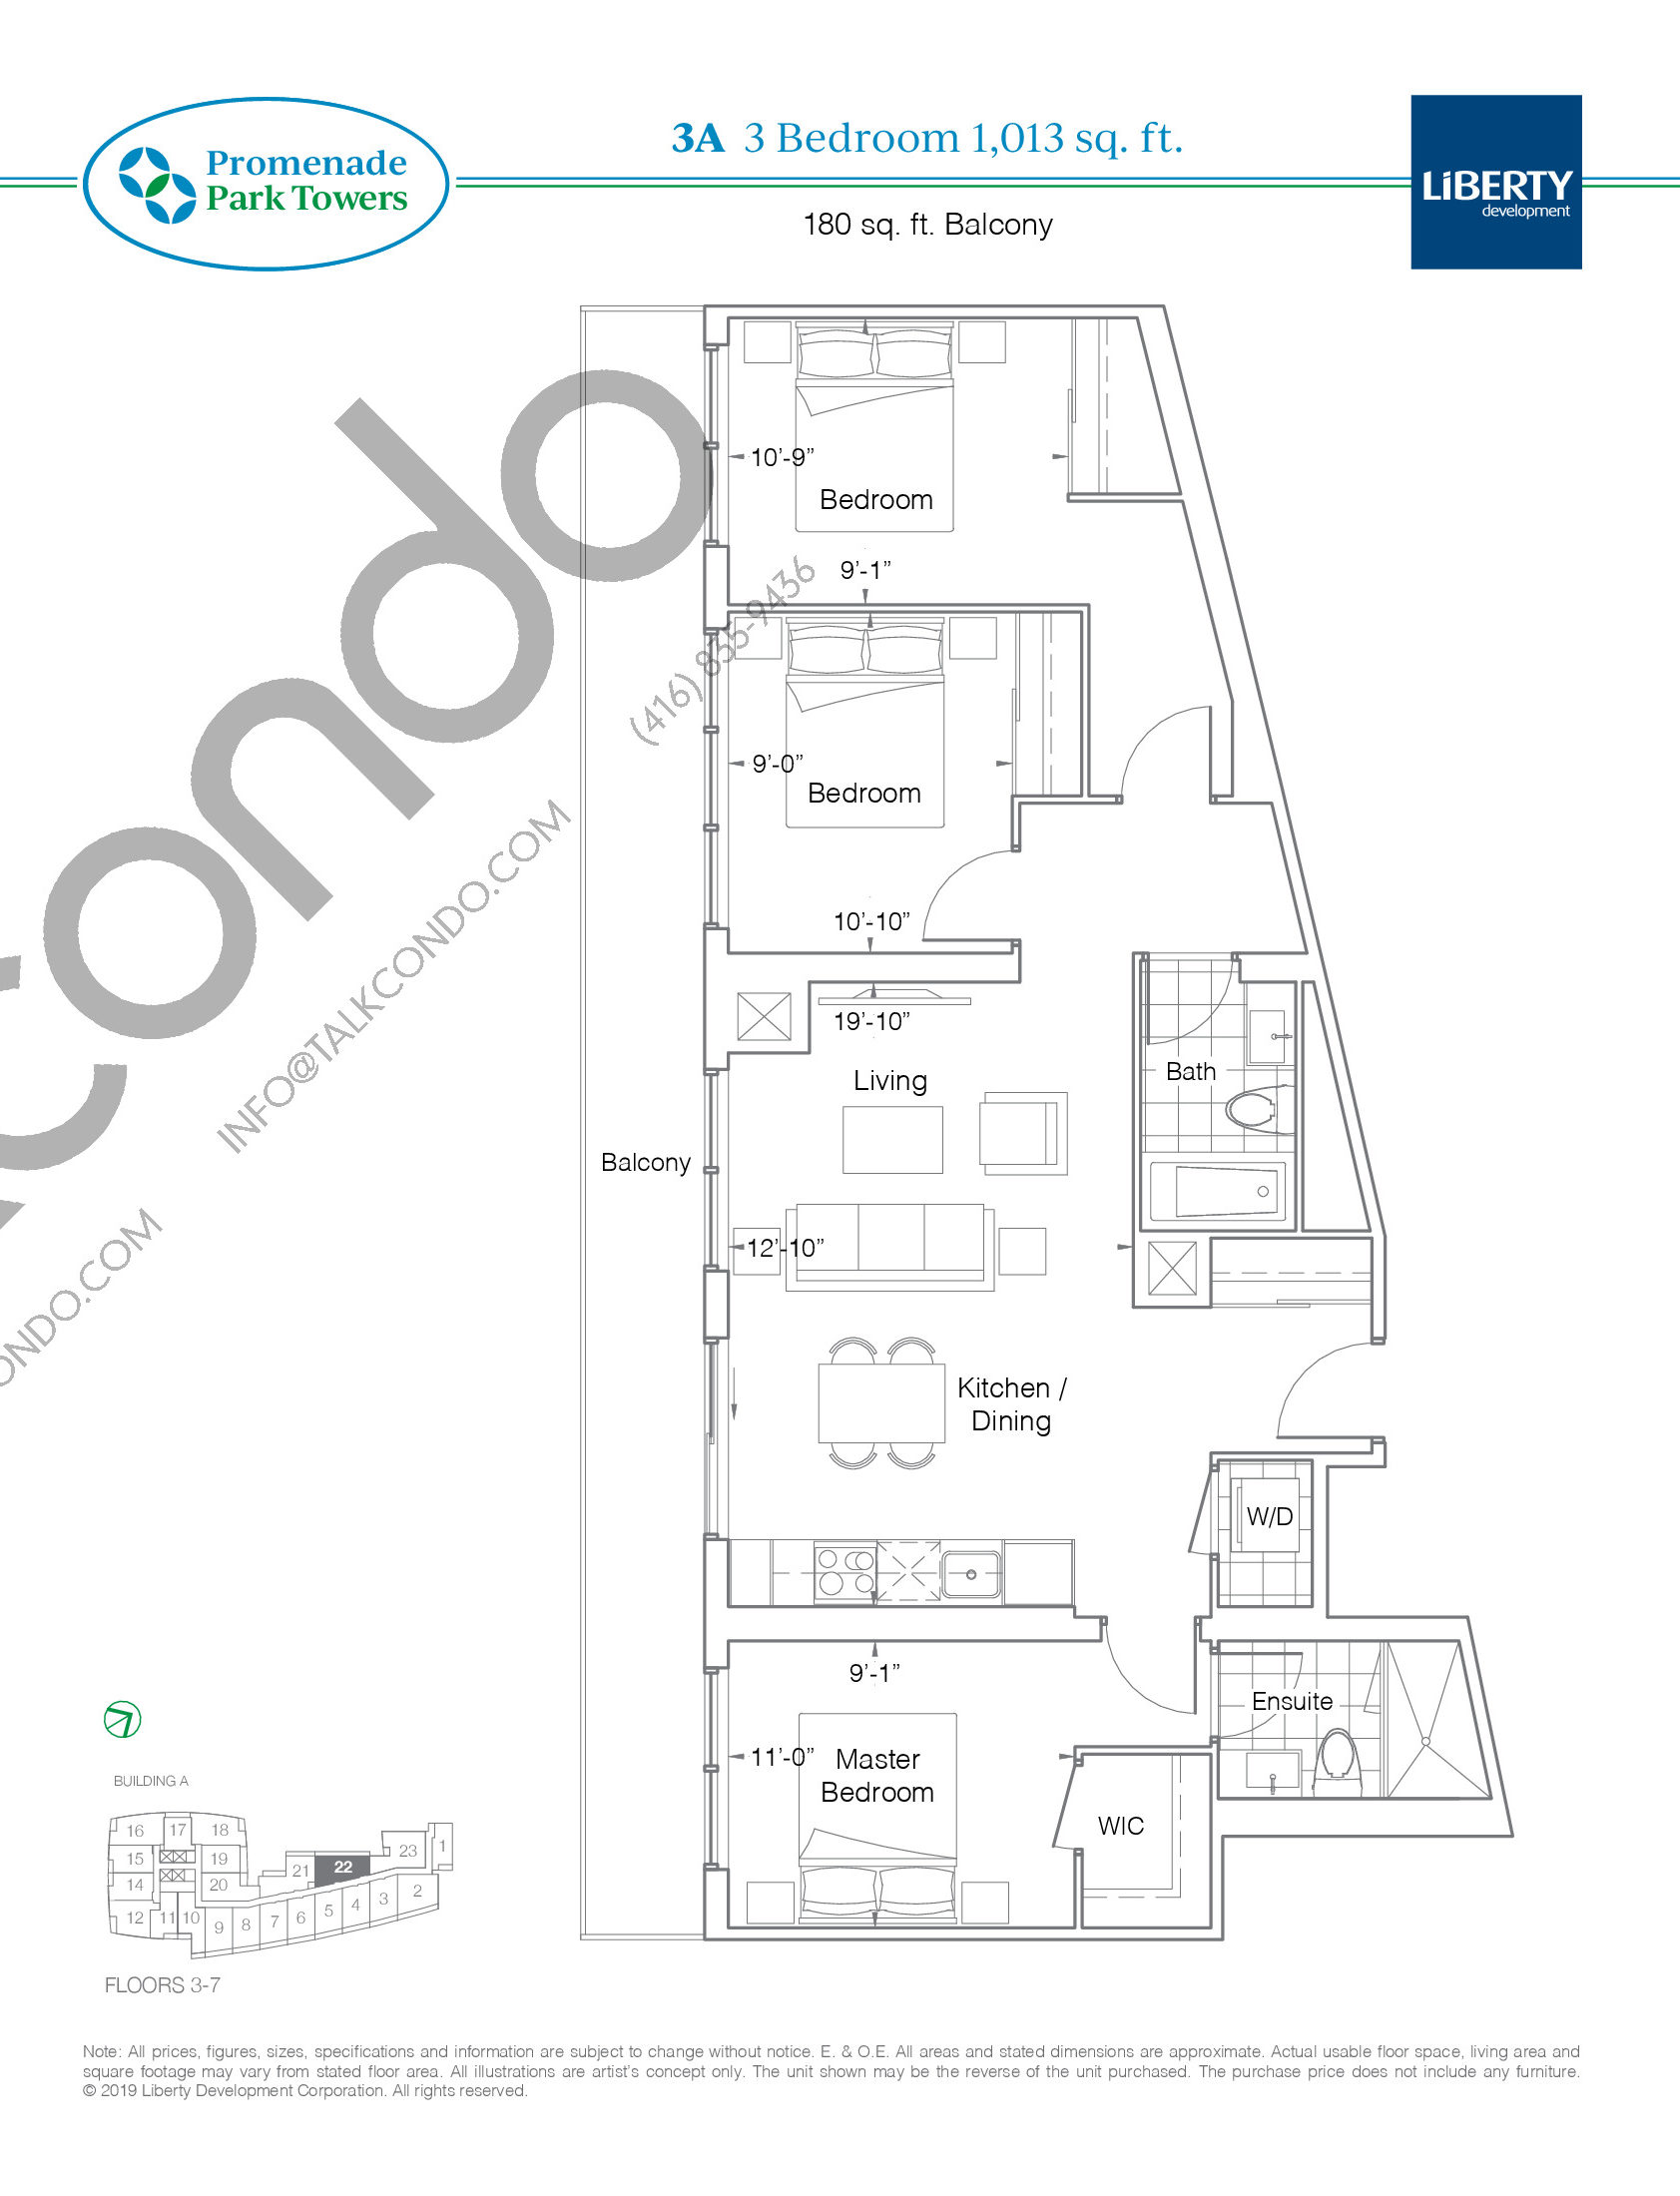 3A Floor Plan at Promenade Park Towers Condos - 1013 sq.ft